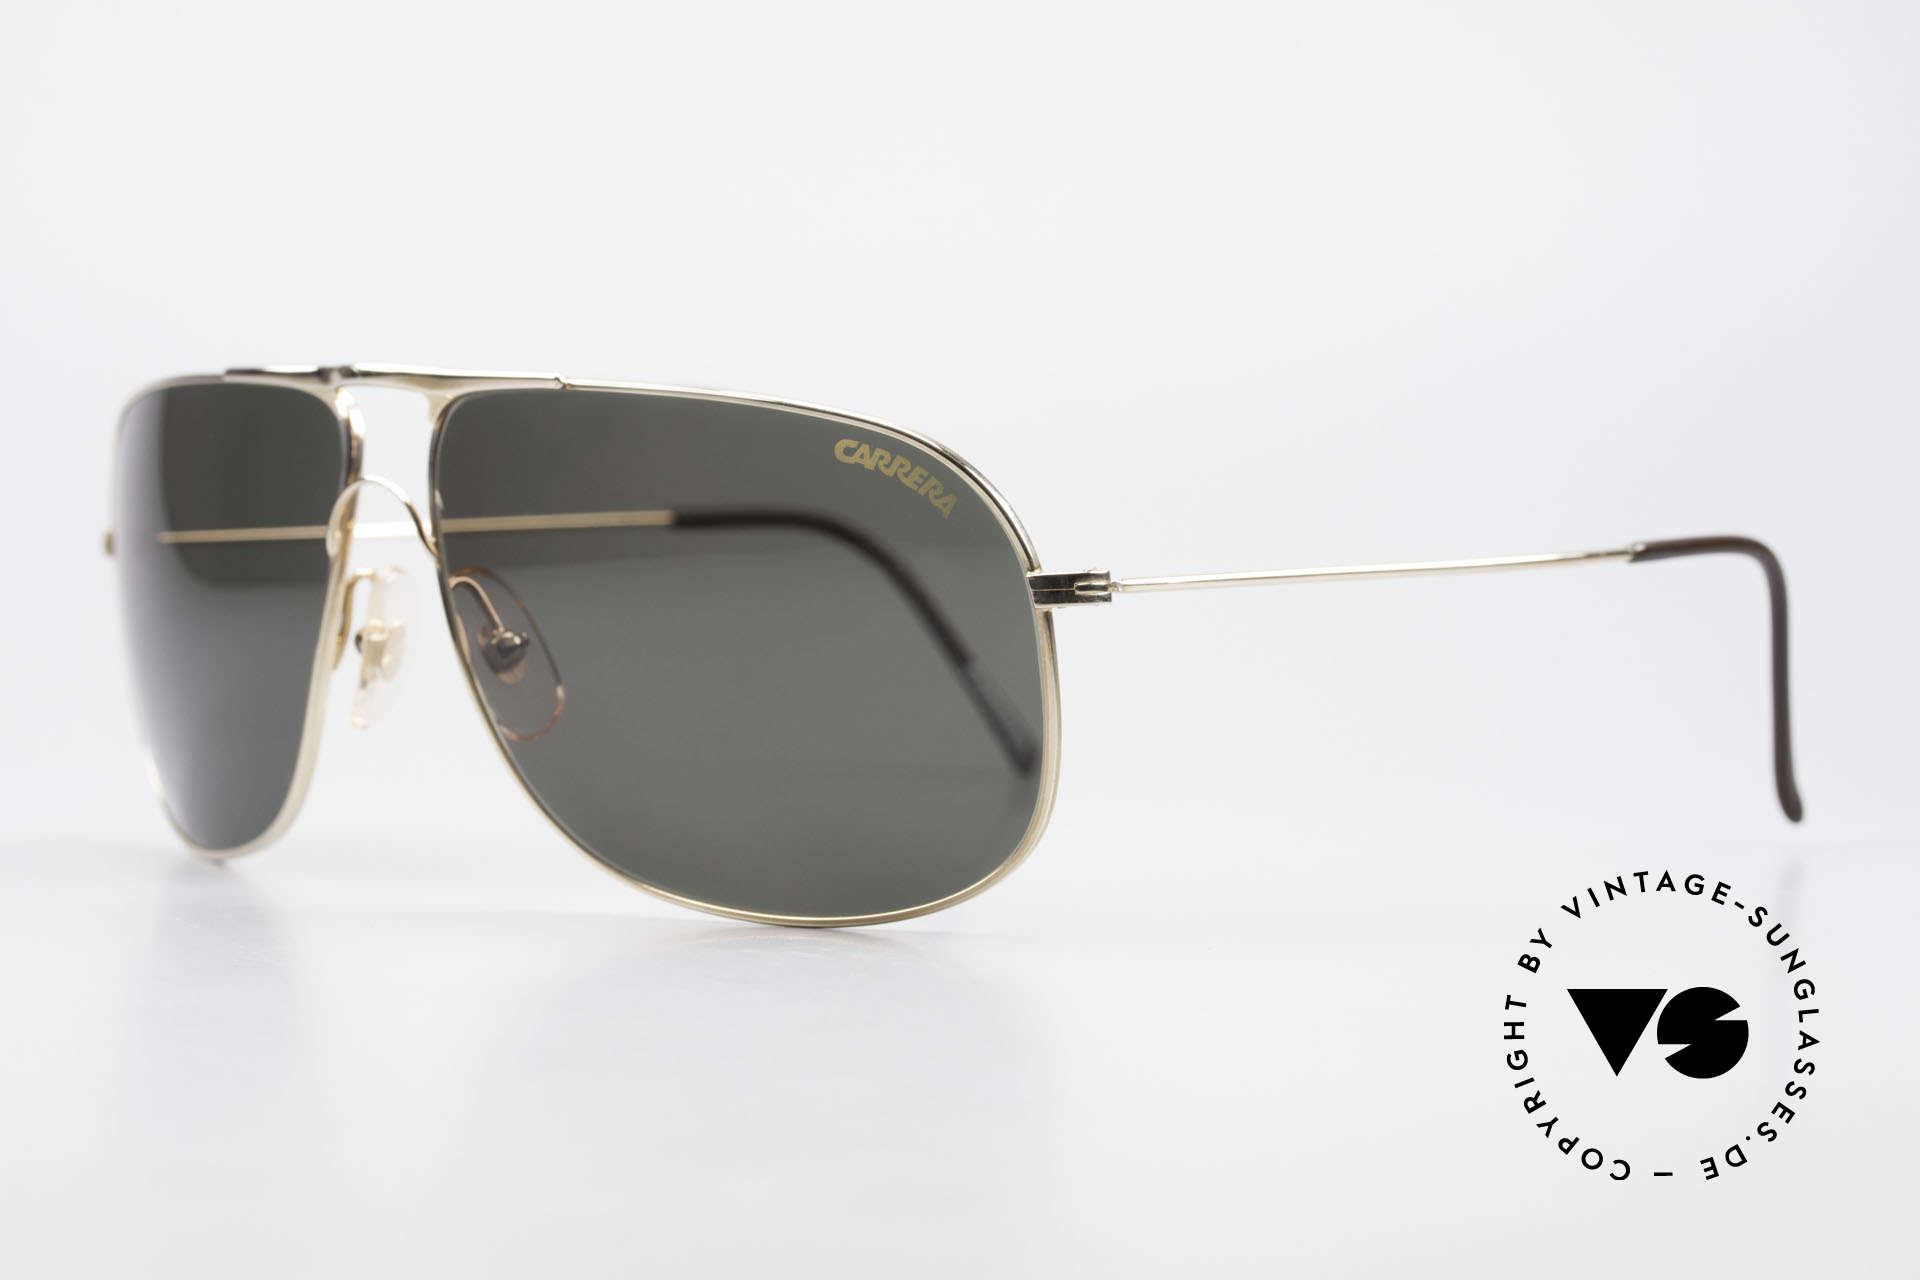 Carrera 5422 Shades With 3 Sets of Lenses, vintage rarity comes with two pairs replacement lenses, Made for Men